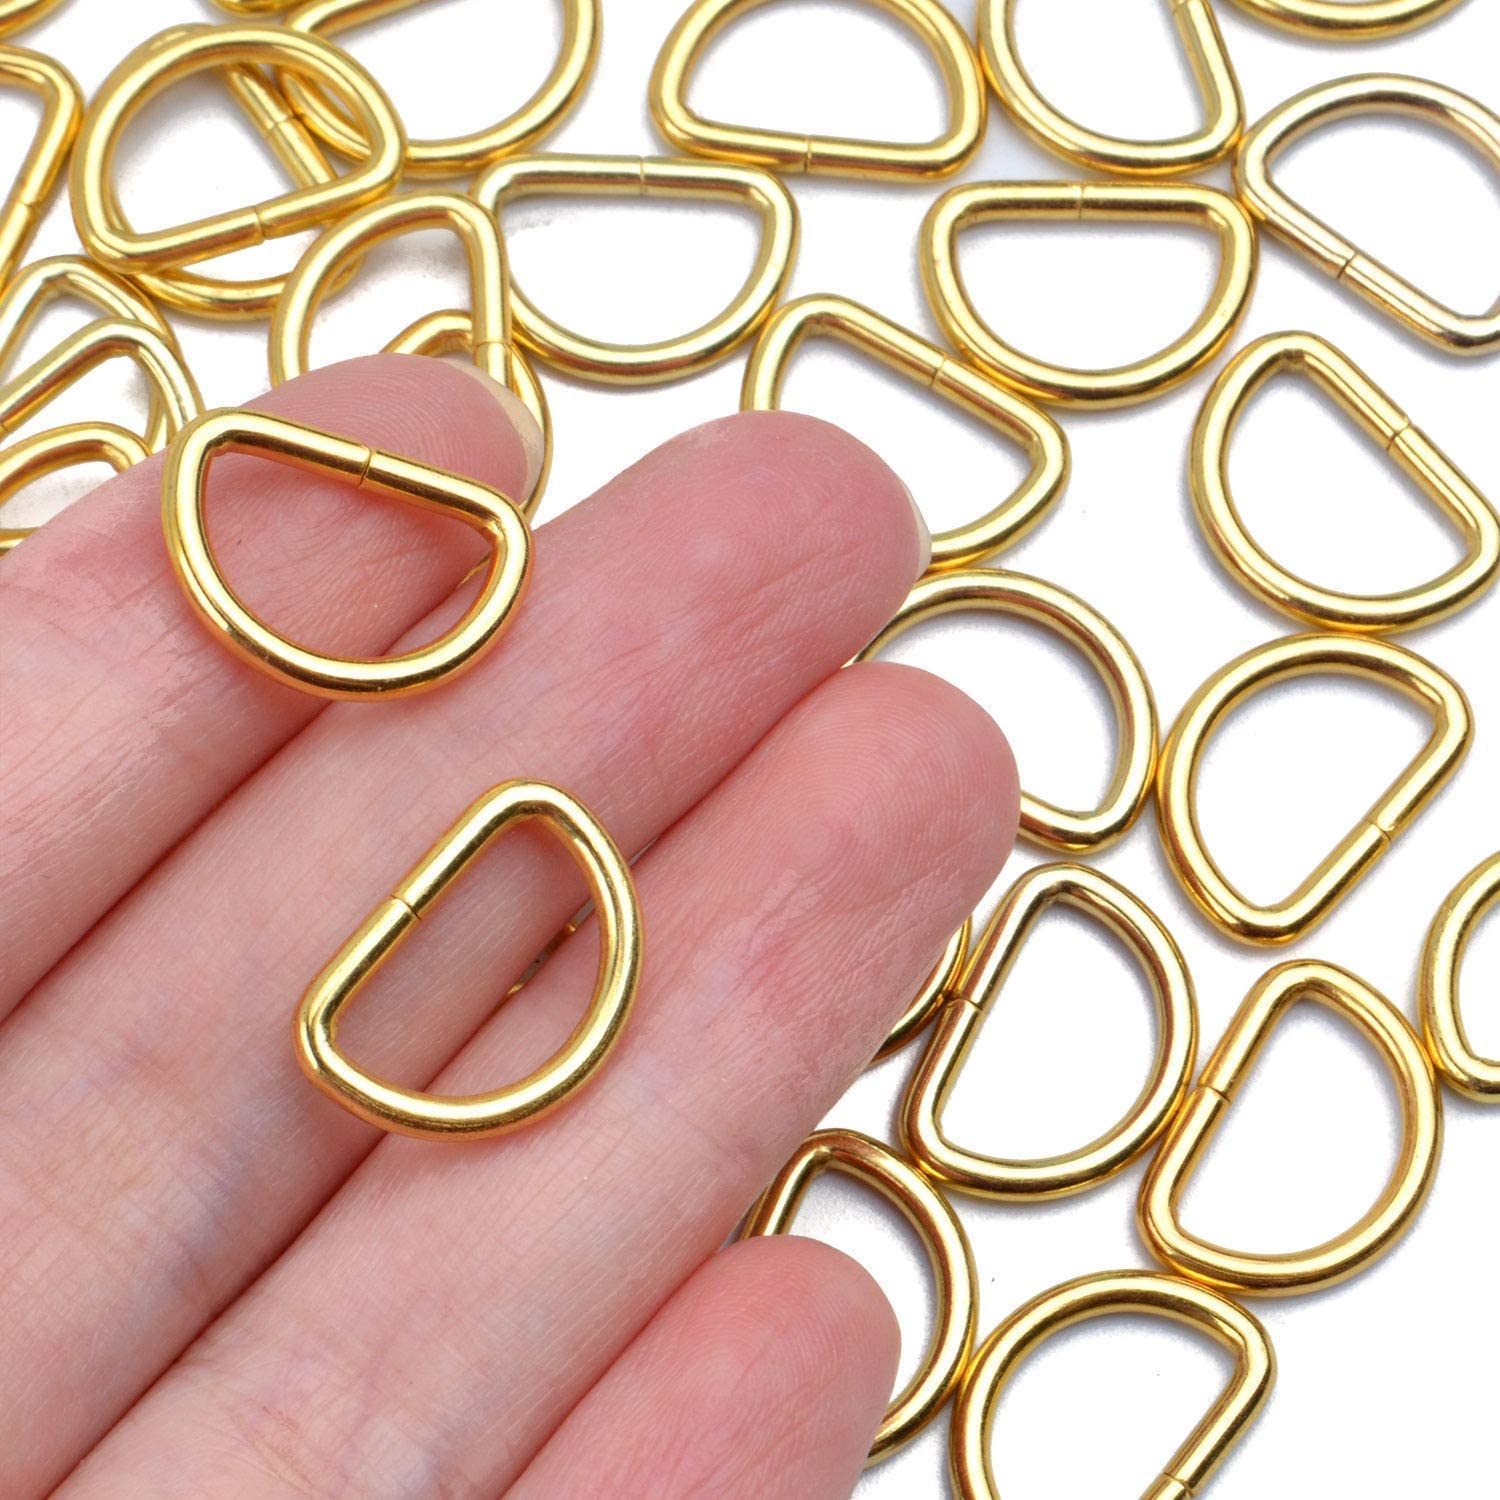 BronaGrand 100 Pieces 1//2inch Metal Non Welded Gold D Ring Buckles D-Ring Loop for Handbag Purse Clothes DIY Accessories